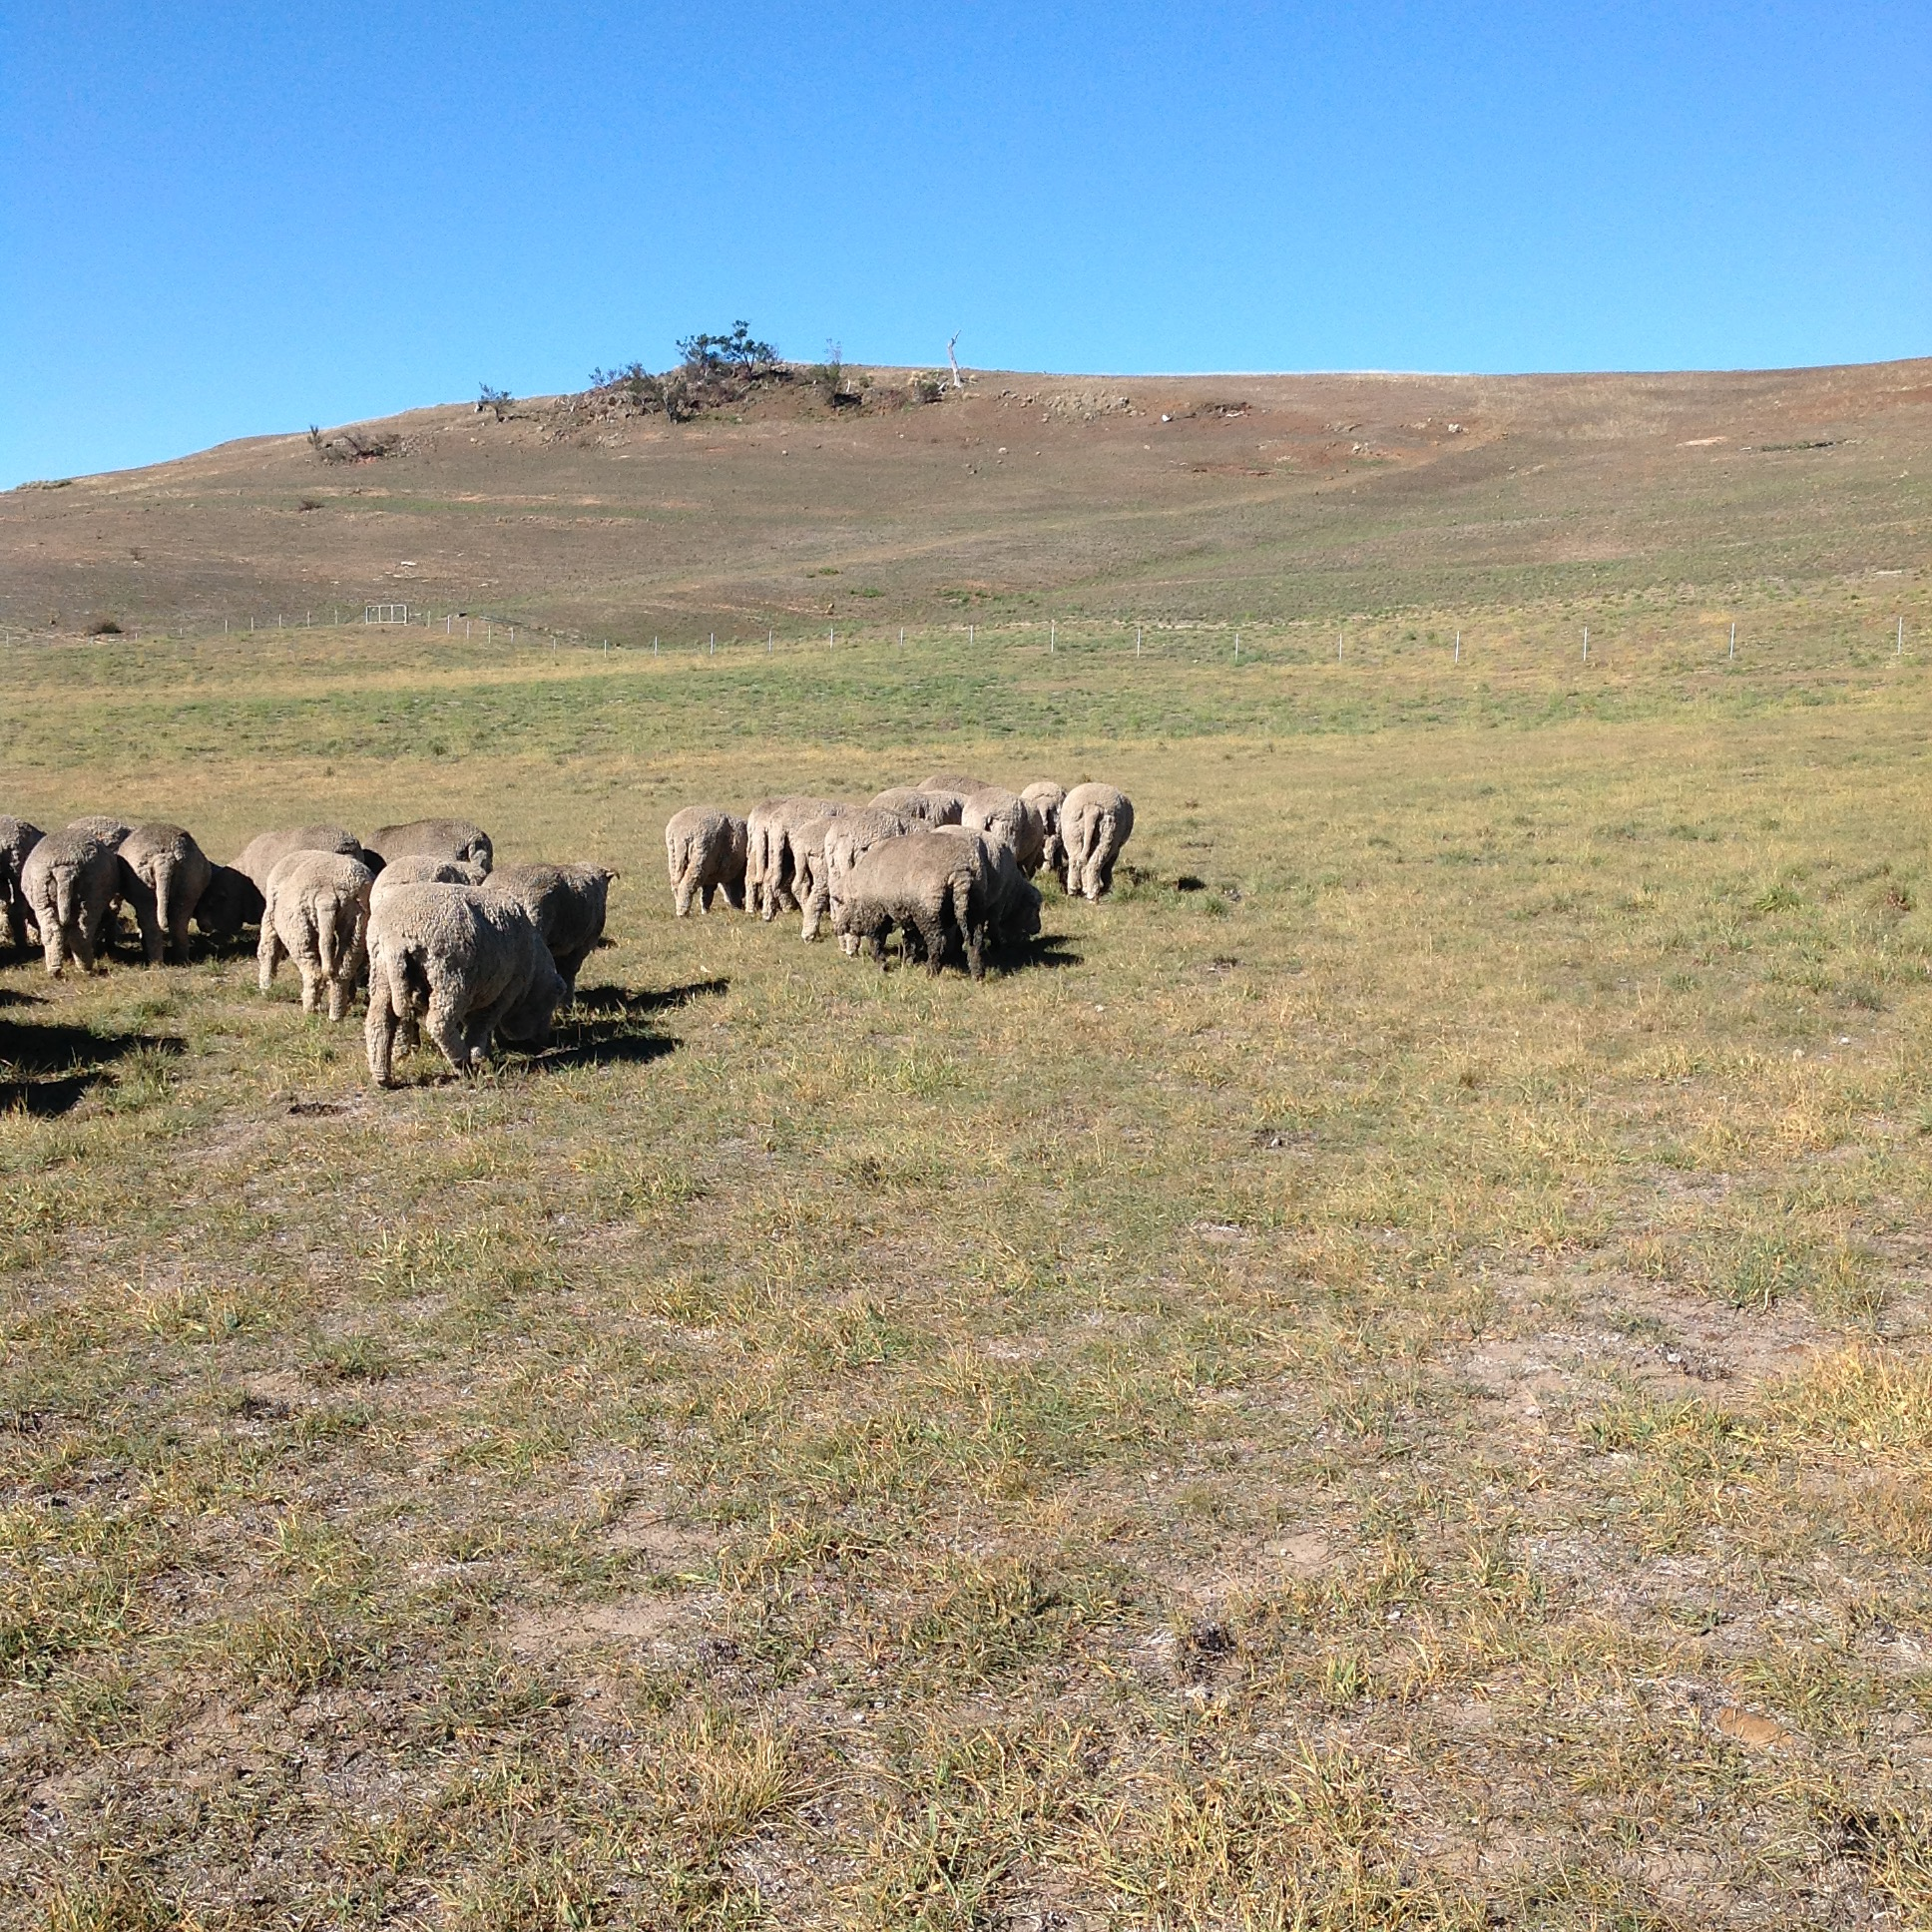 P11: There's the muddy fellow. So, all present if not entirely correct, as they say in the military. The far gate of this paddock is open to the White Gum Grazing Area, so my work here is done for the day. We'll be back Monday for a circuit in a whole new area. Stay tuned.